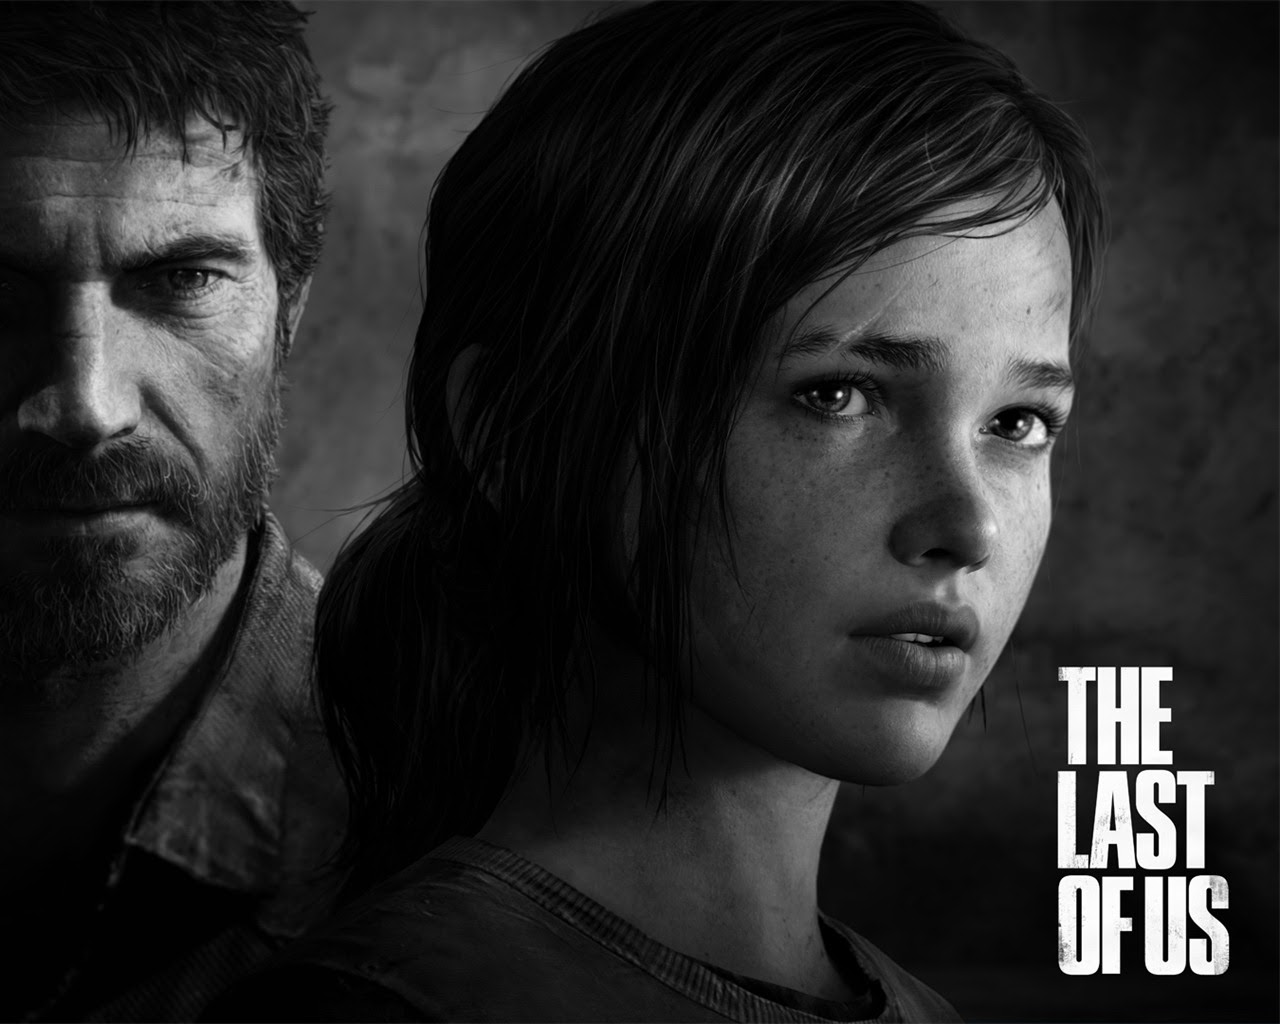 The Last Of Us Hd Game Wallpapers 2 1280x1024 Wallpaper